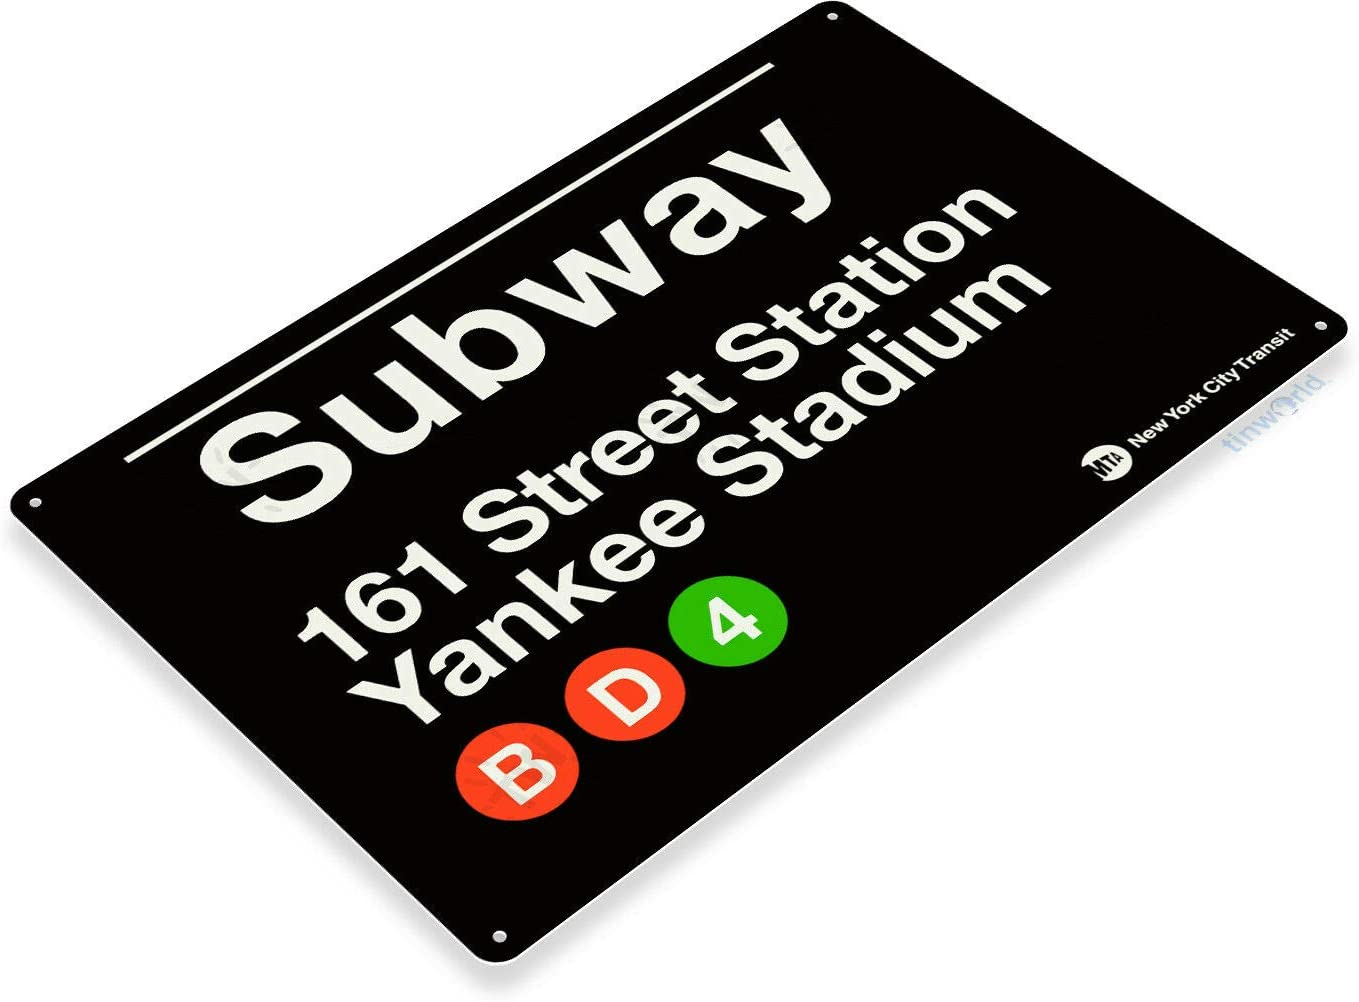 SRongmao Yankee Stadium New York Street Subway 161 Retro Wall Bar Decor Metal Tin Sign 8x12in